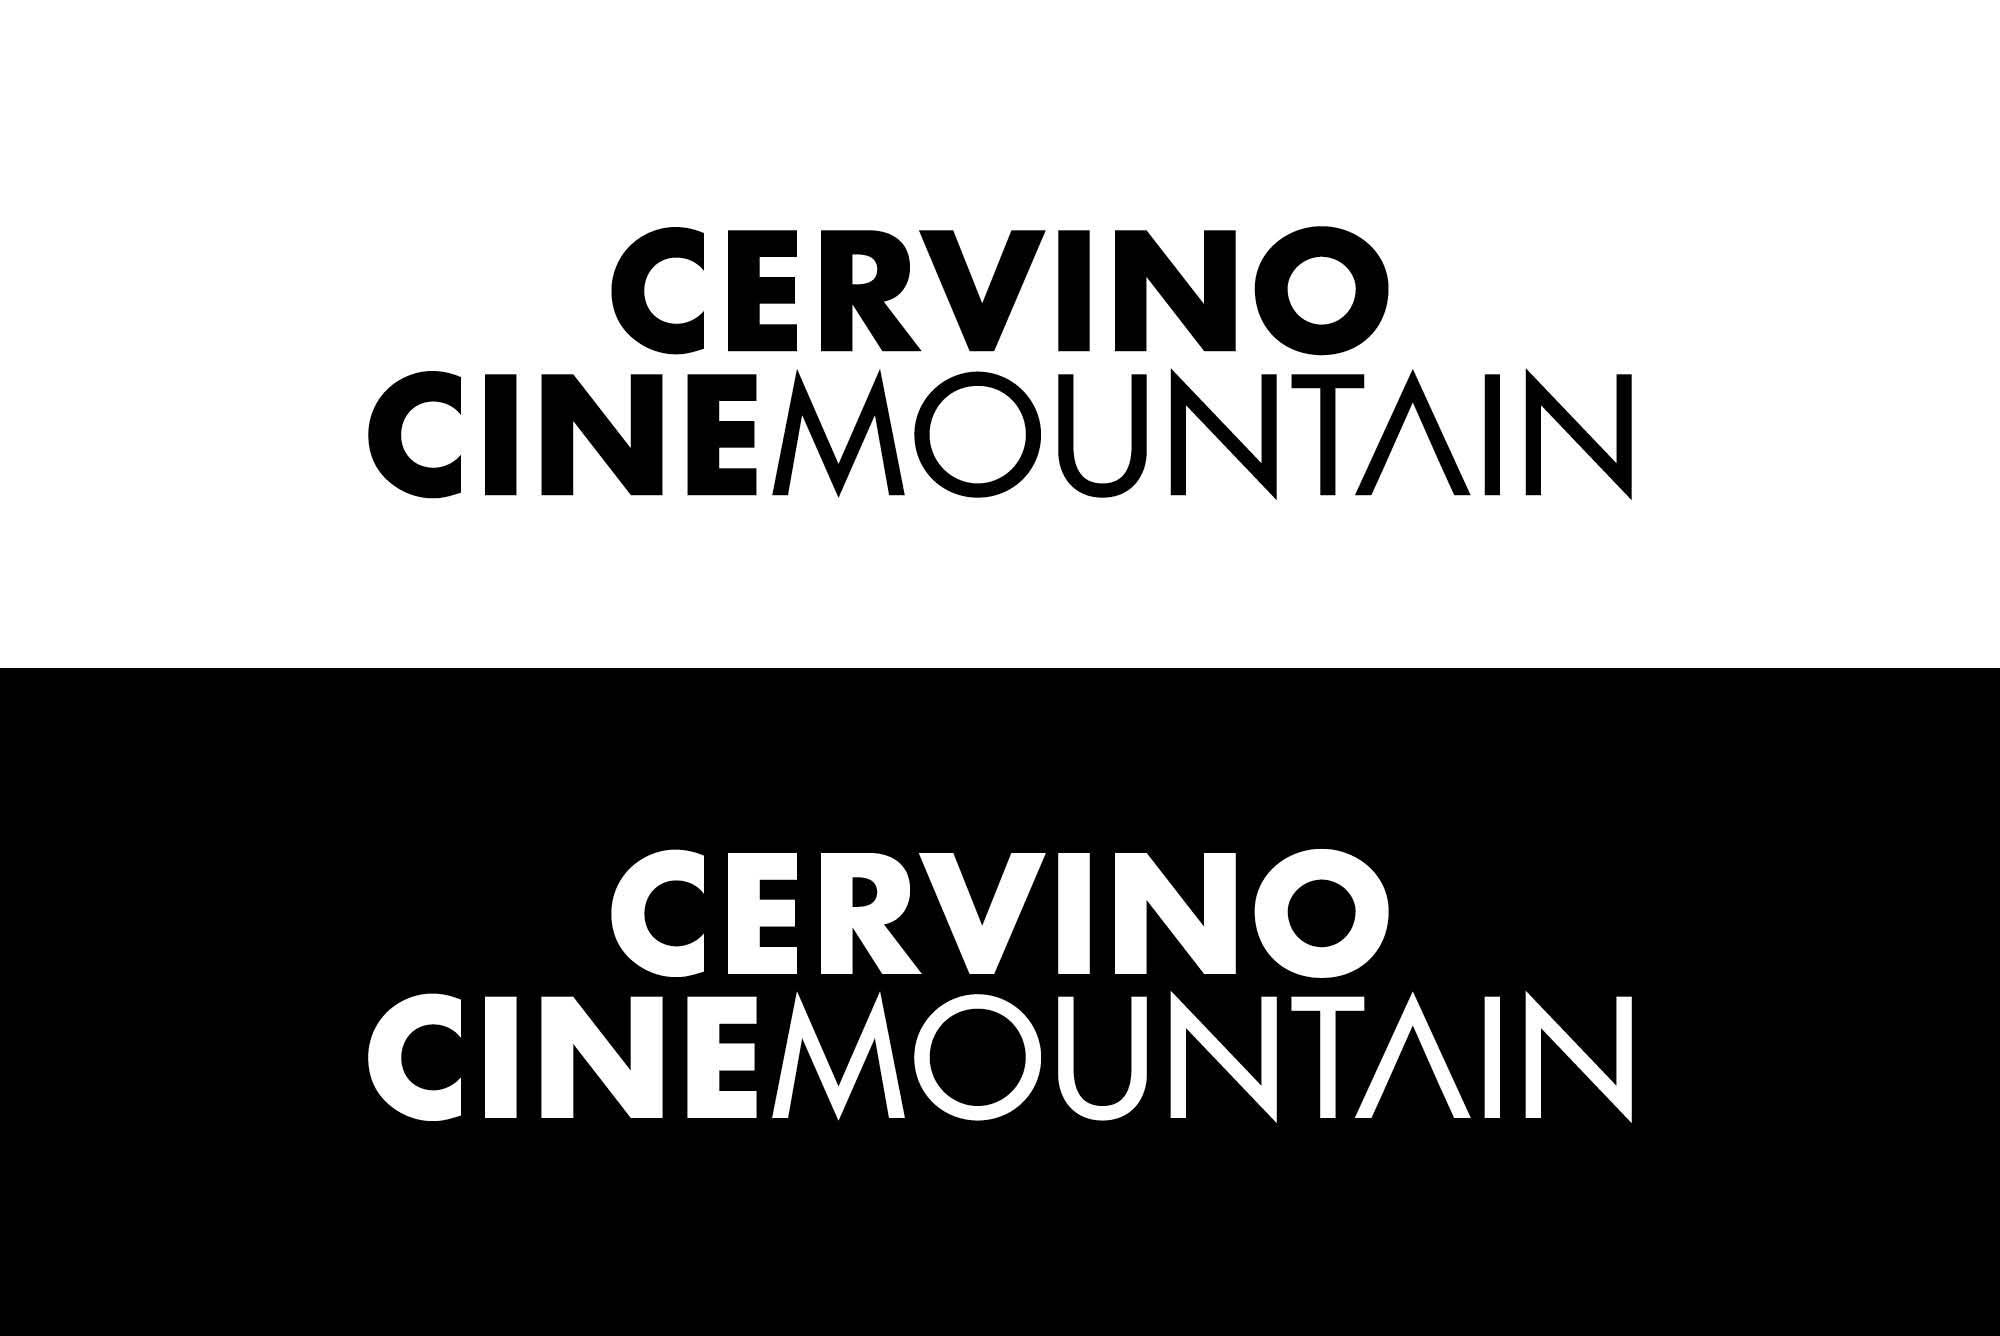 CERVINO CINEMOUNTAIN 20083